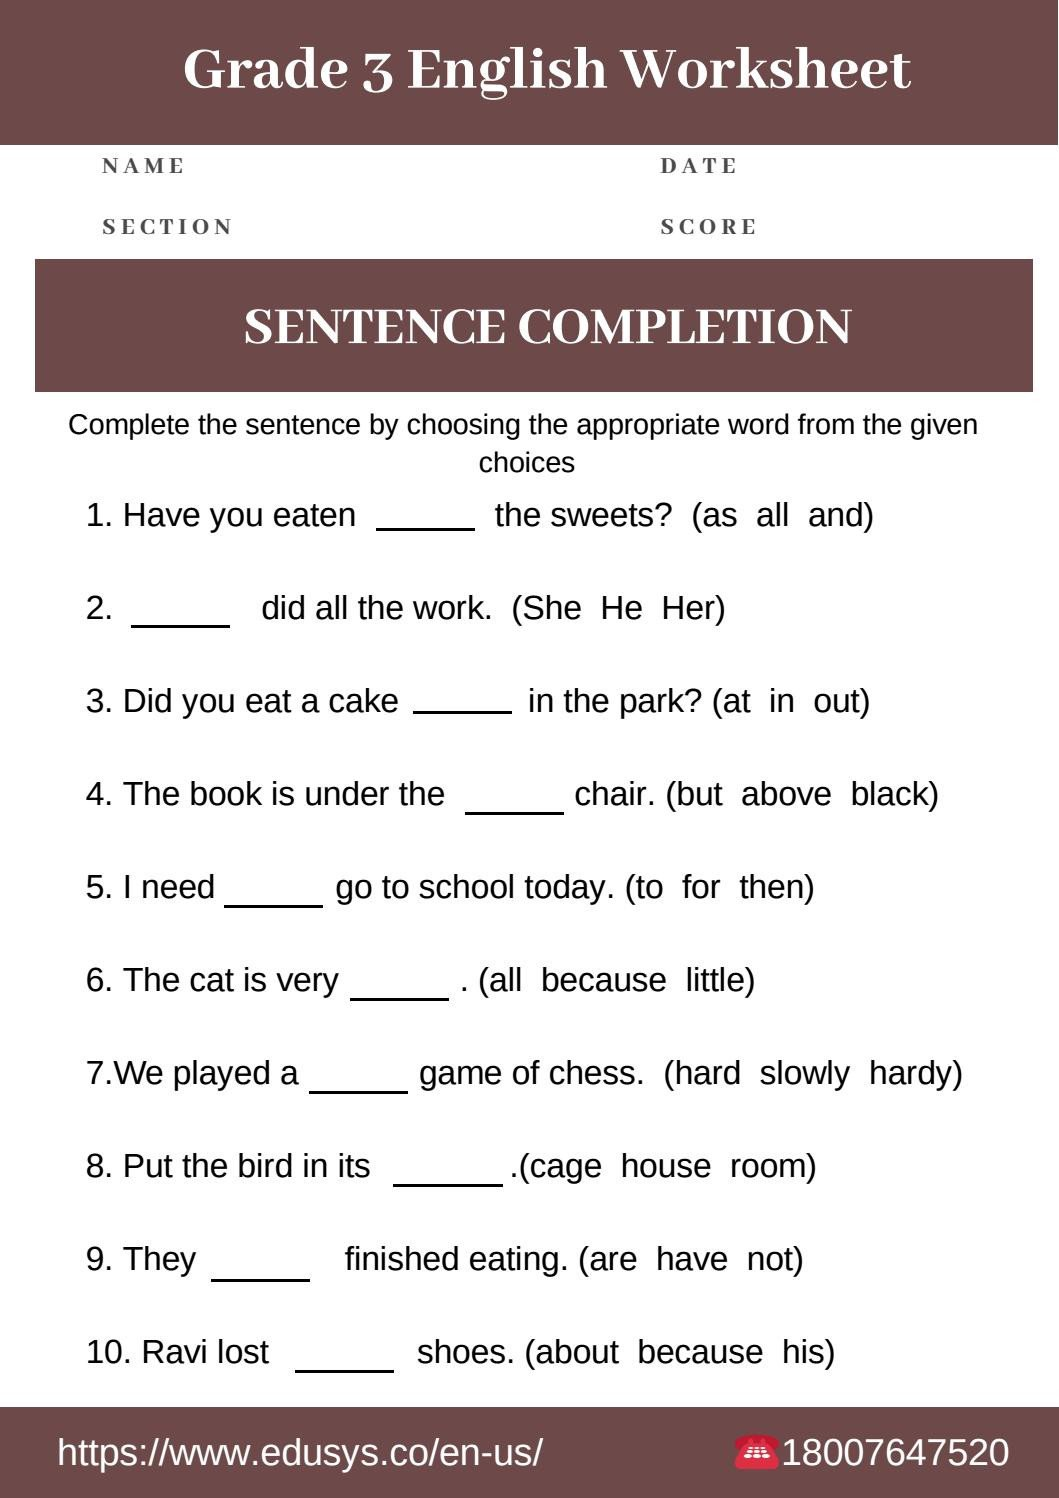 4th Grade Grammar Worksheets Pdf 3rd Grade English Grammar Worksheet Free Pdf by Nithya issuu